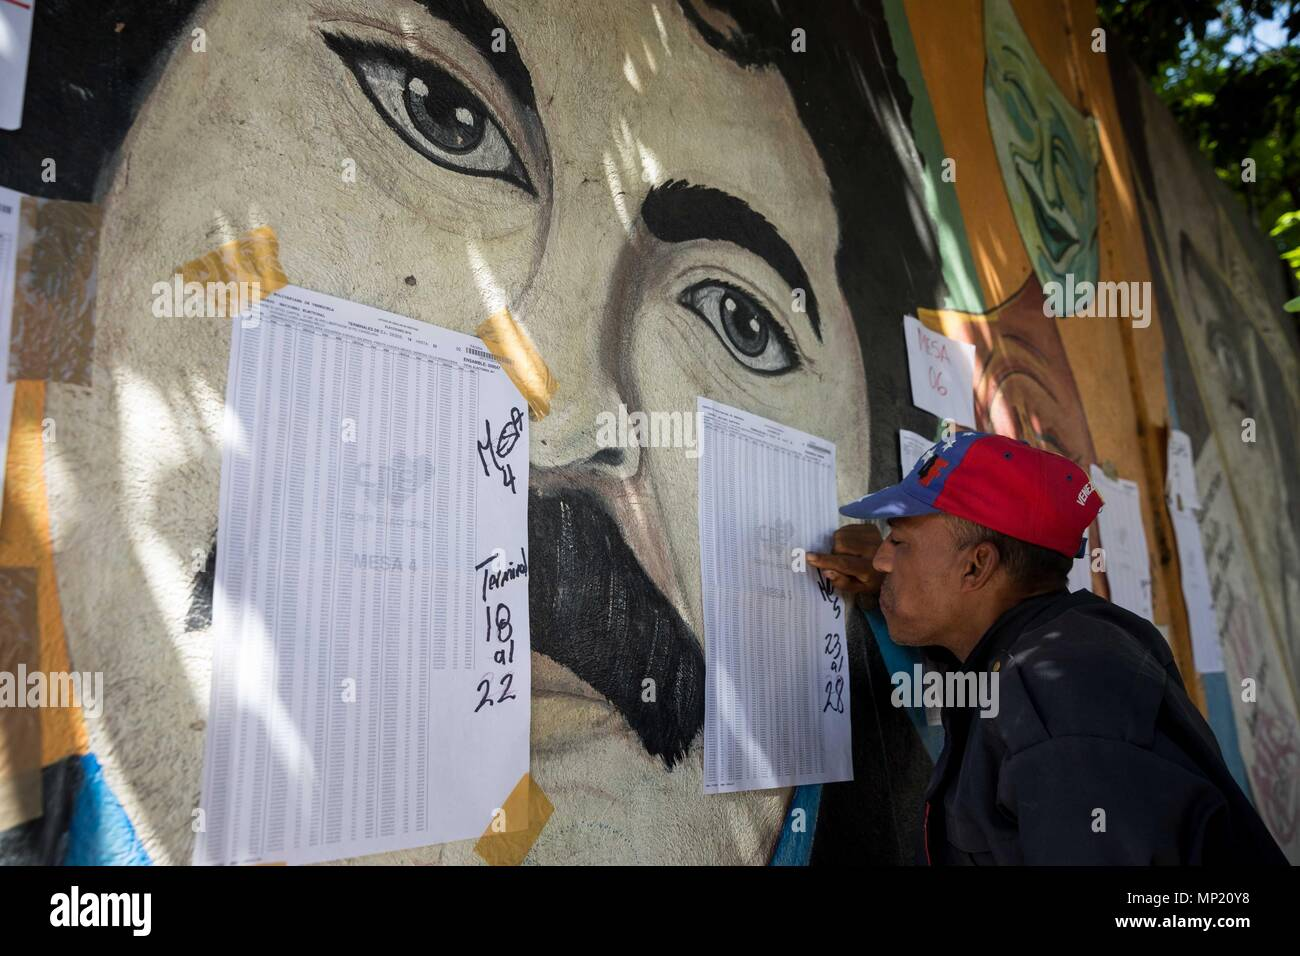 Caracas, Venezuela. 20th May, 2018. Voters look for their names on a list during the Presidential election day in an electoral center in Caracas, Venezuela, on 20 May 2018. The Minister of Communication and Information of Venezuela, Jorge Rodríguez, said today that they have already voted more than two and a half million people in the presidential elections, few hours before the opening of the electoral centers. Credit: MIGUEL GUTIÉRREZ/EFE/Alamy Live News - Stock Image